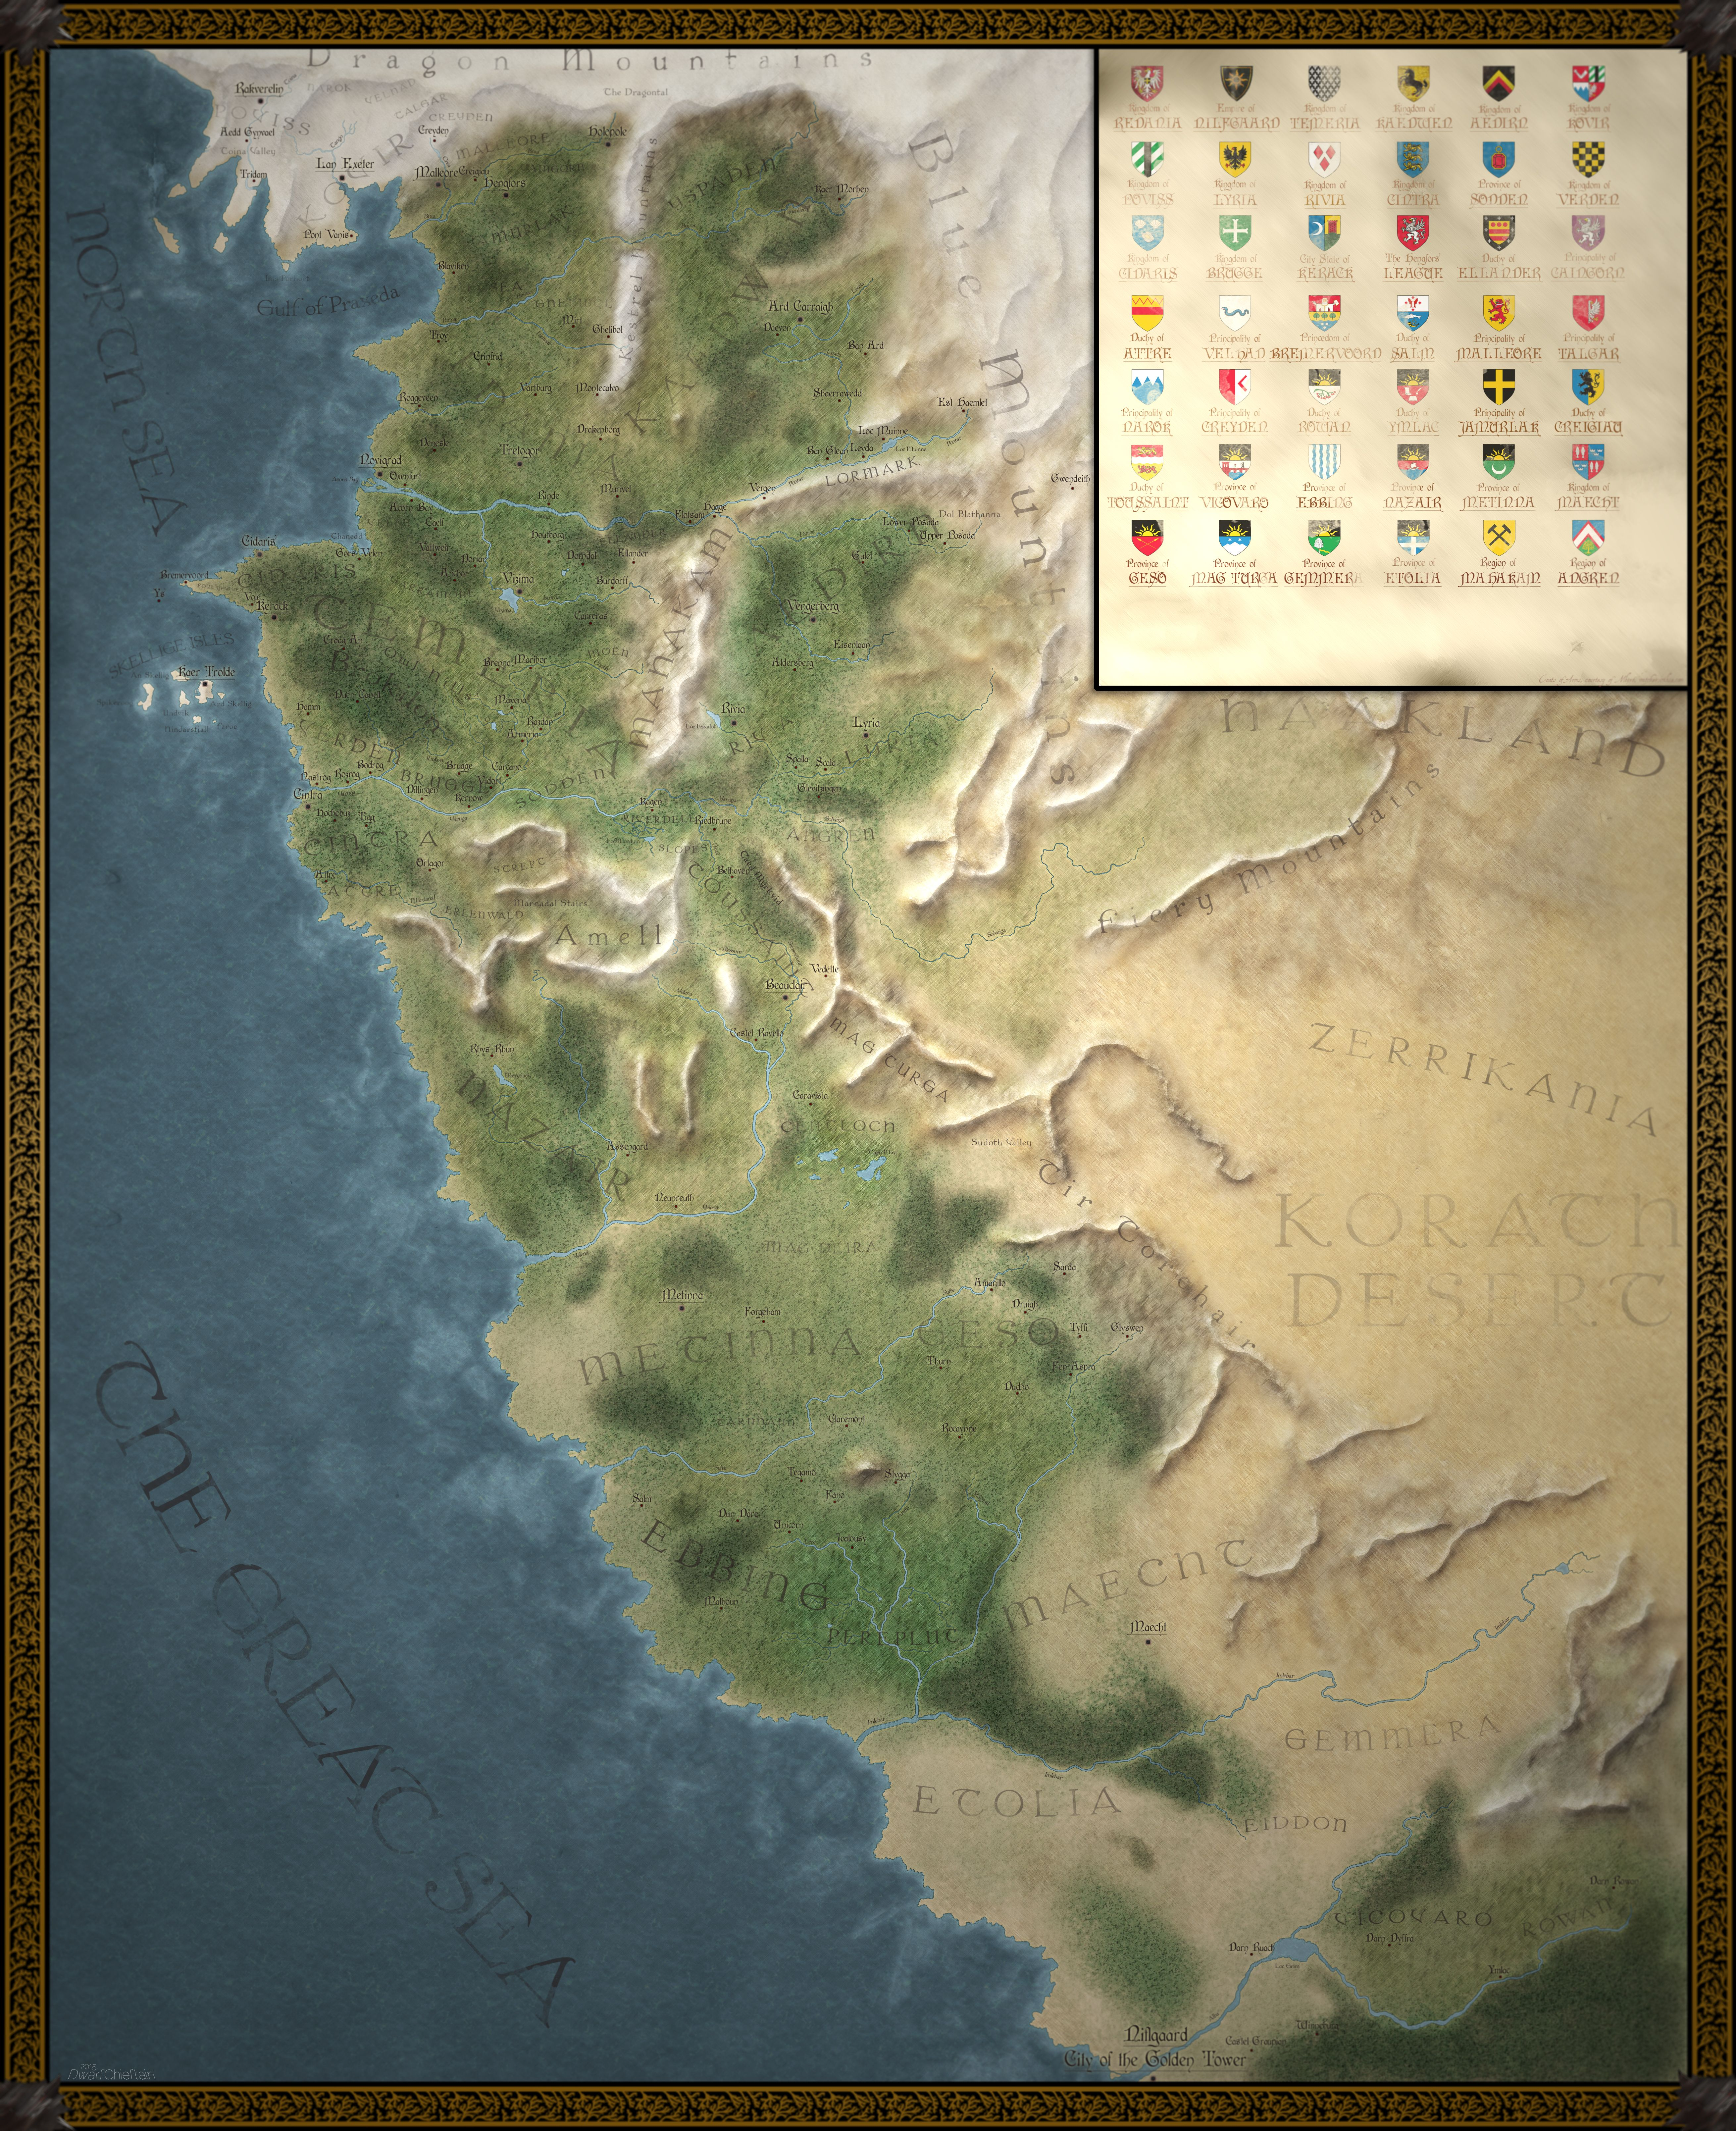 Httporig15iantartd757f201518859 explore the witcher world maps and more gumiabroncs Images